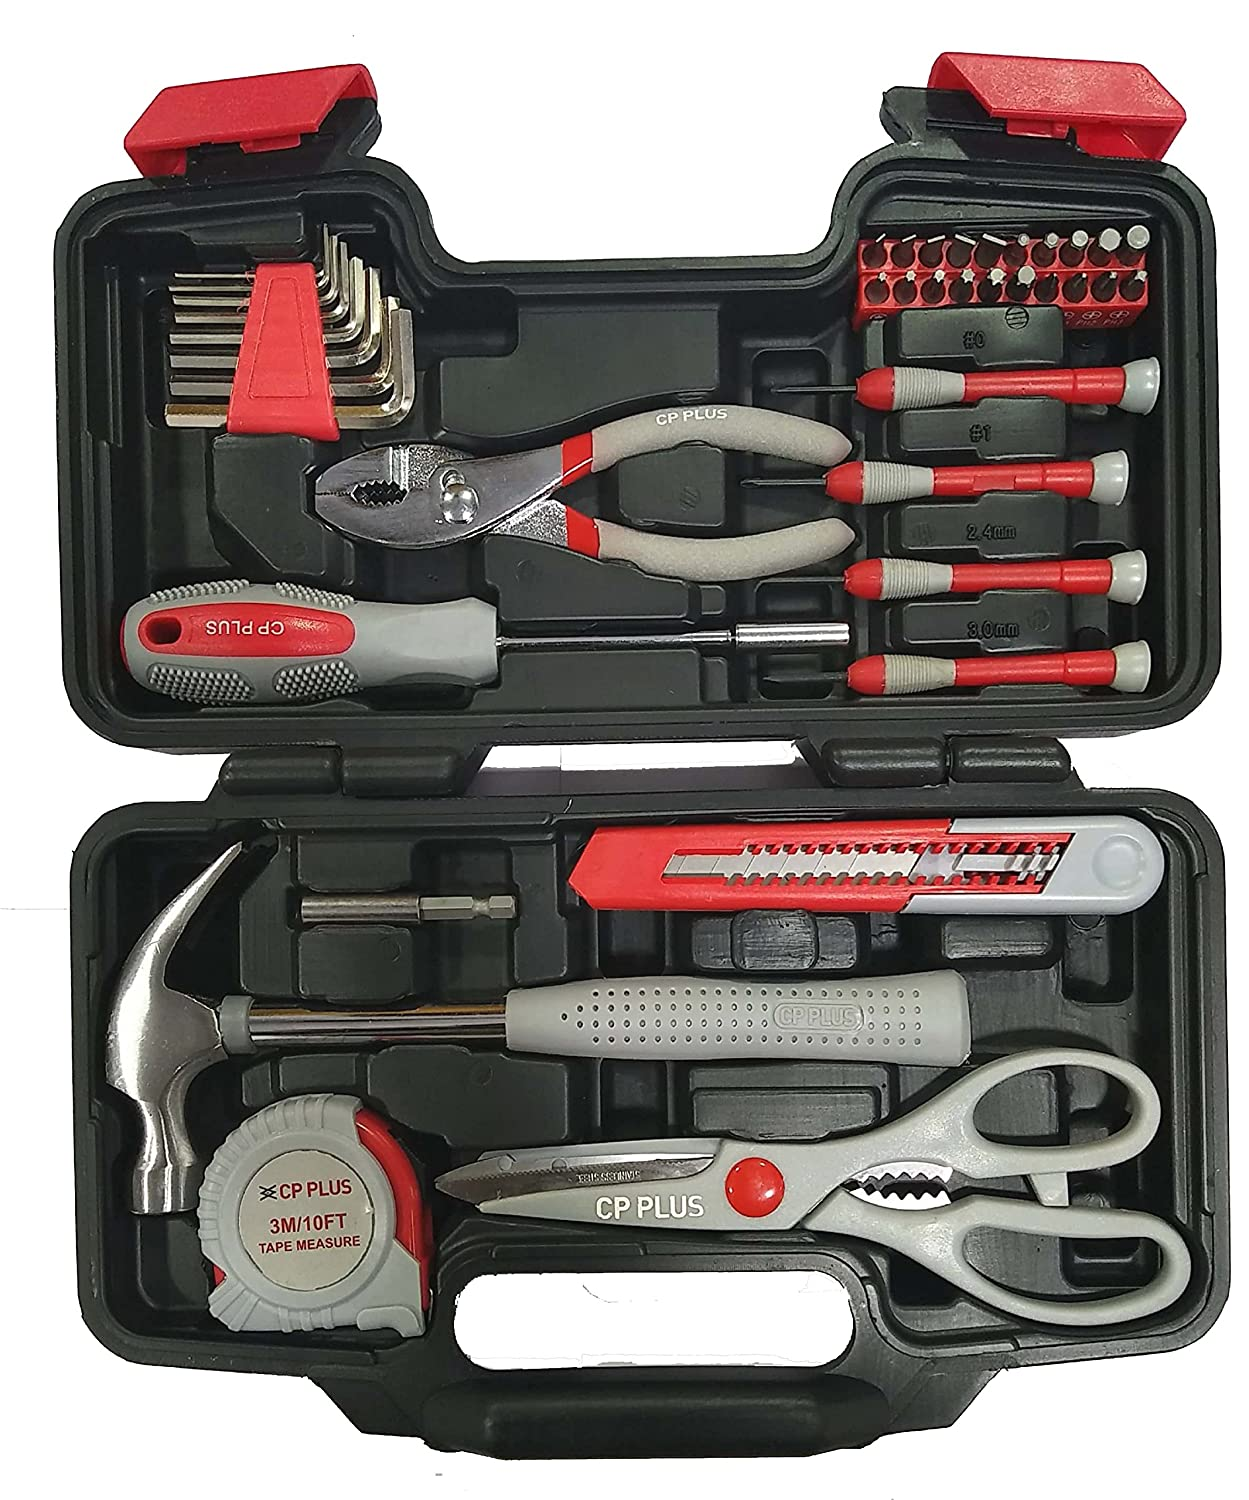 CP Plus CCTV Professional Hand Tool Kit (Red And Black) - 39 Pieces